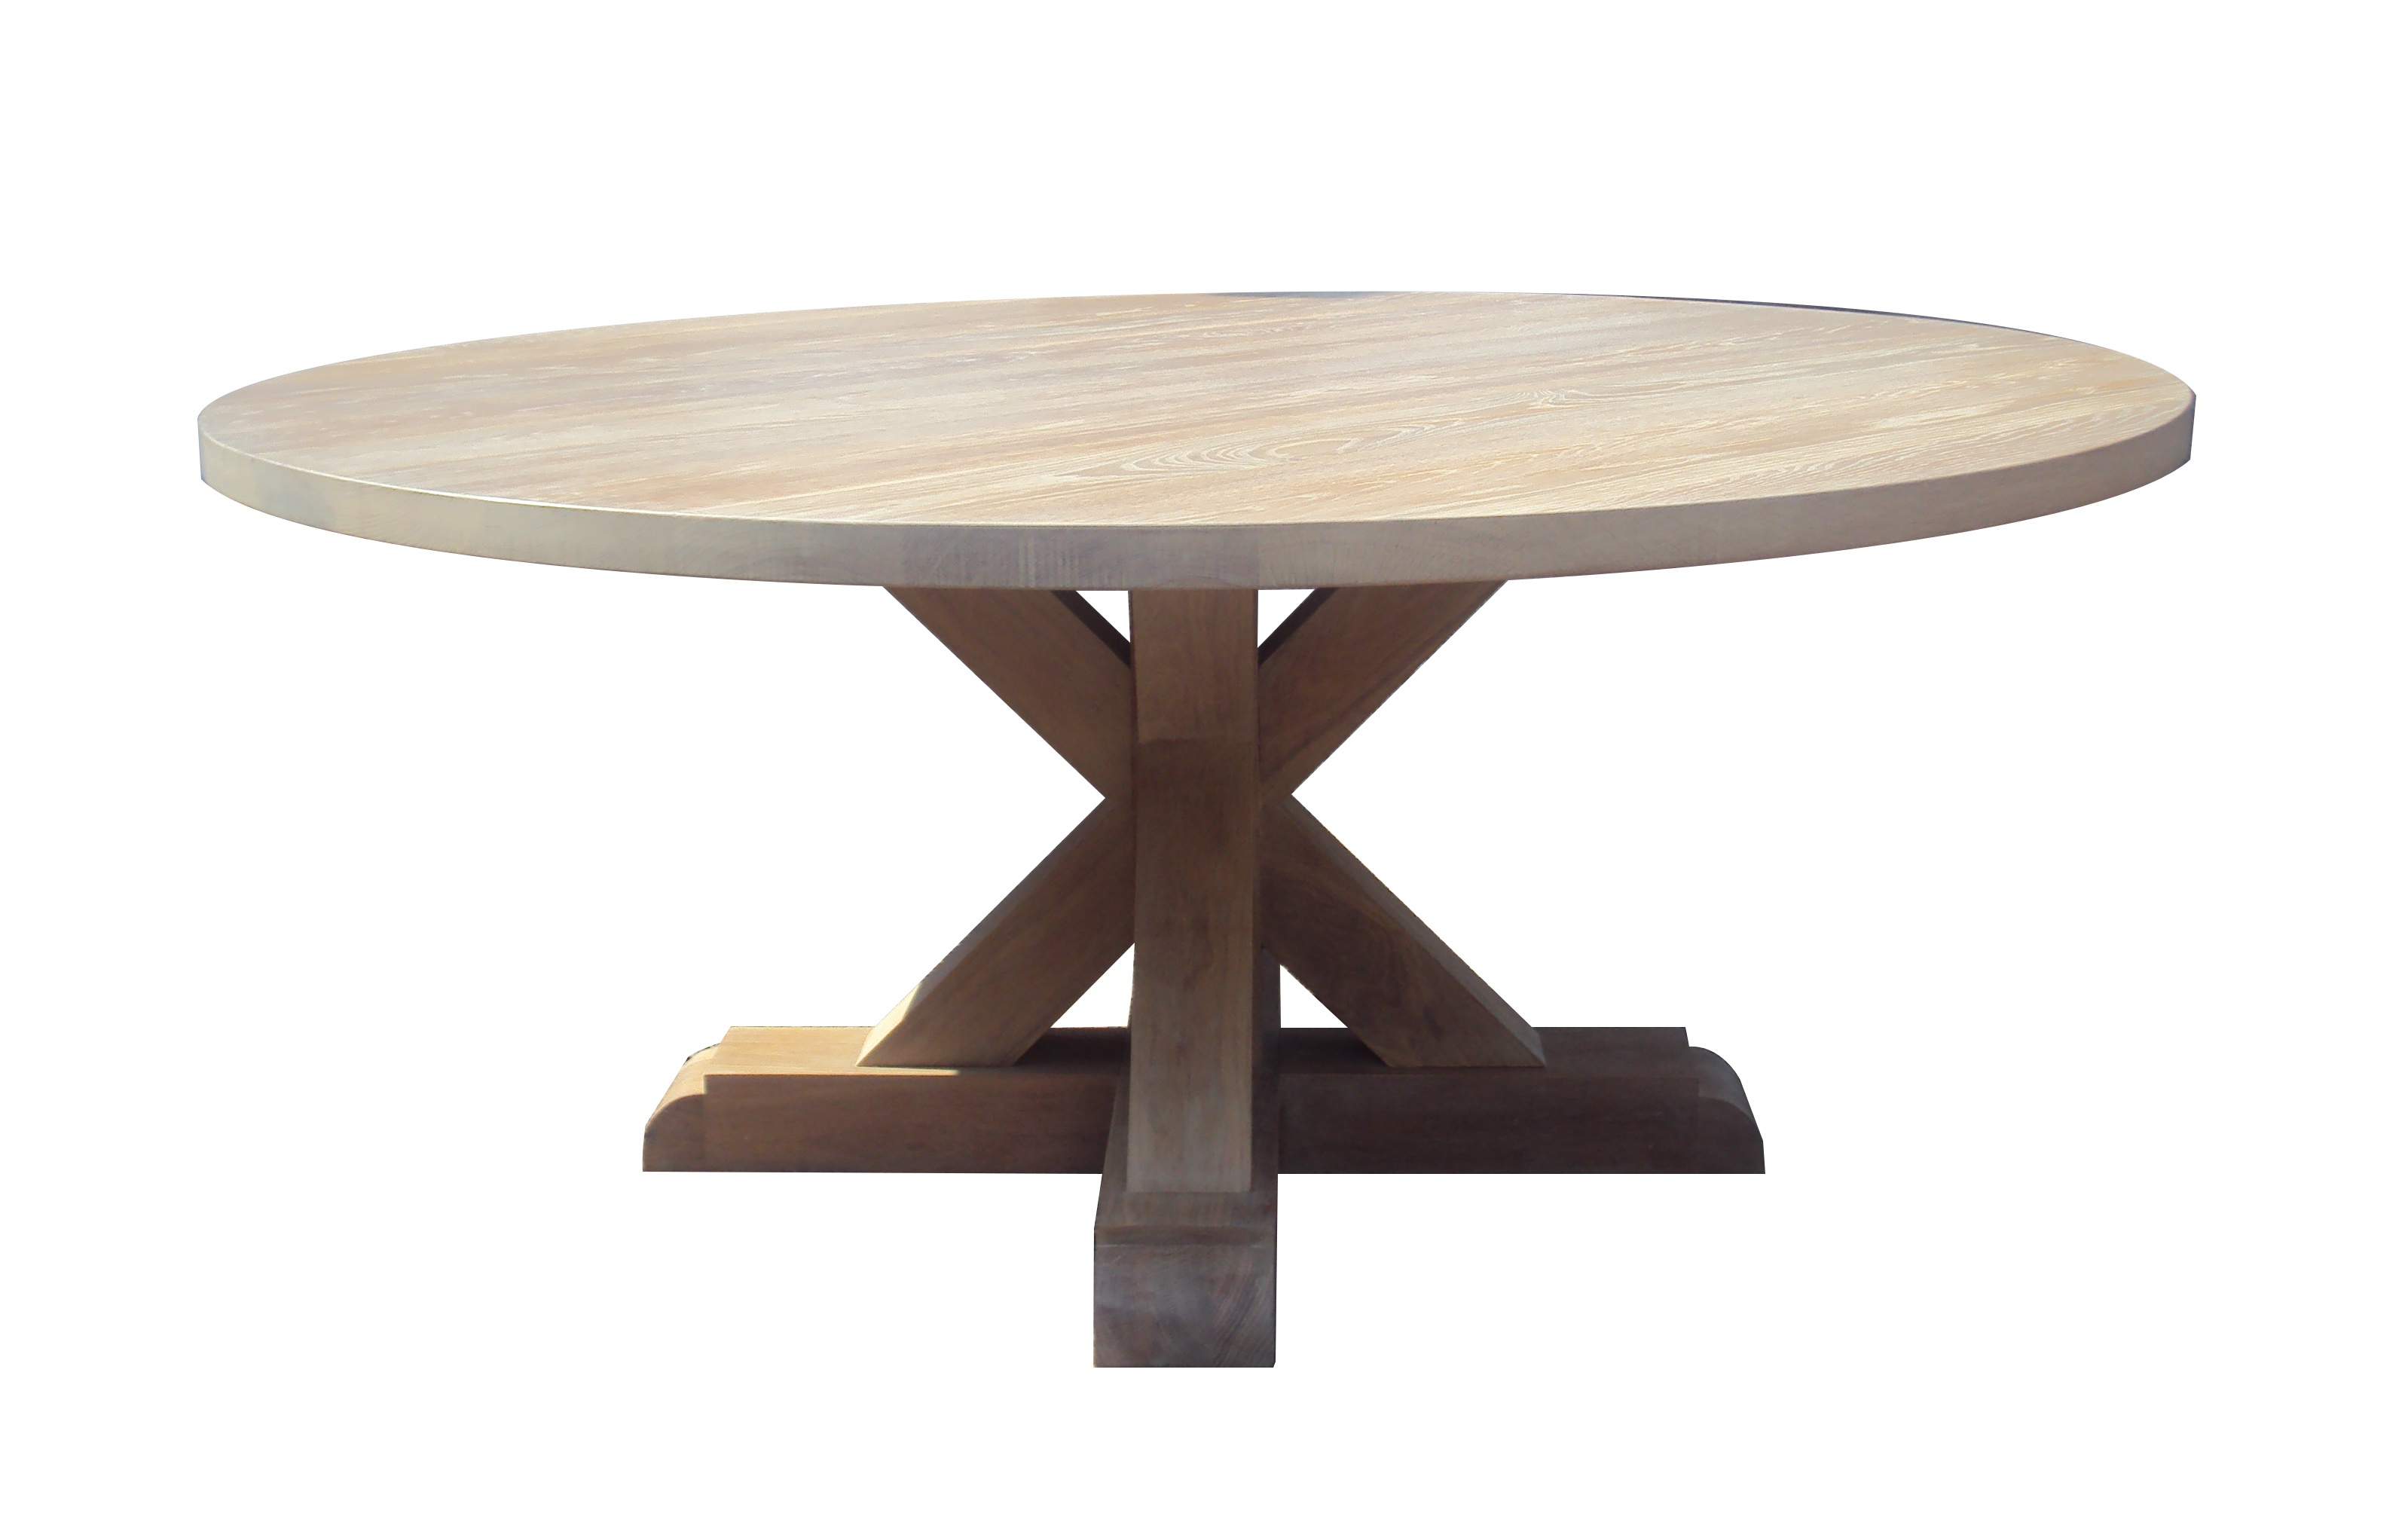 Rustic Round Table in oak